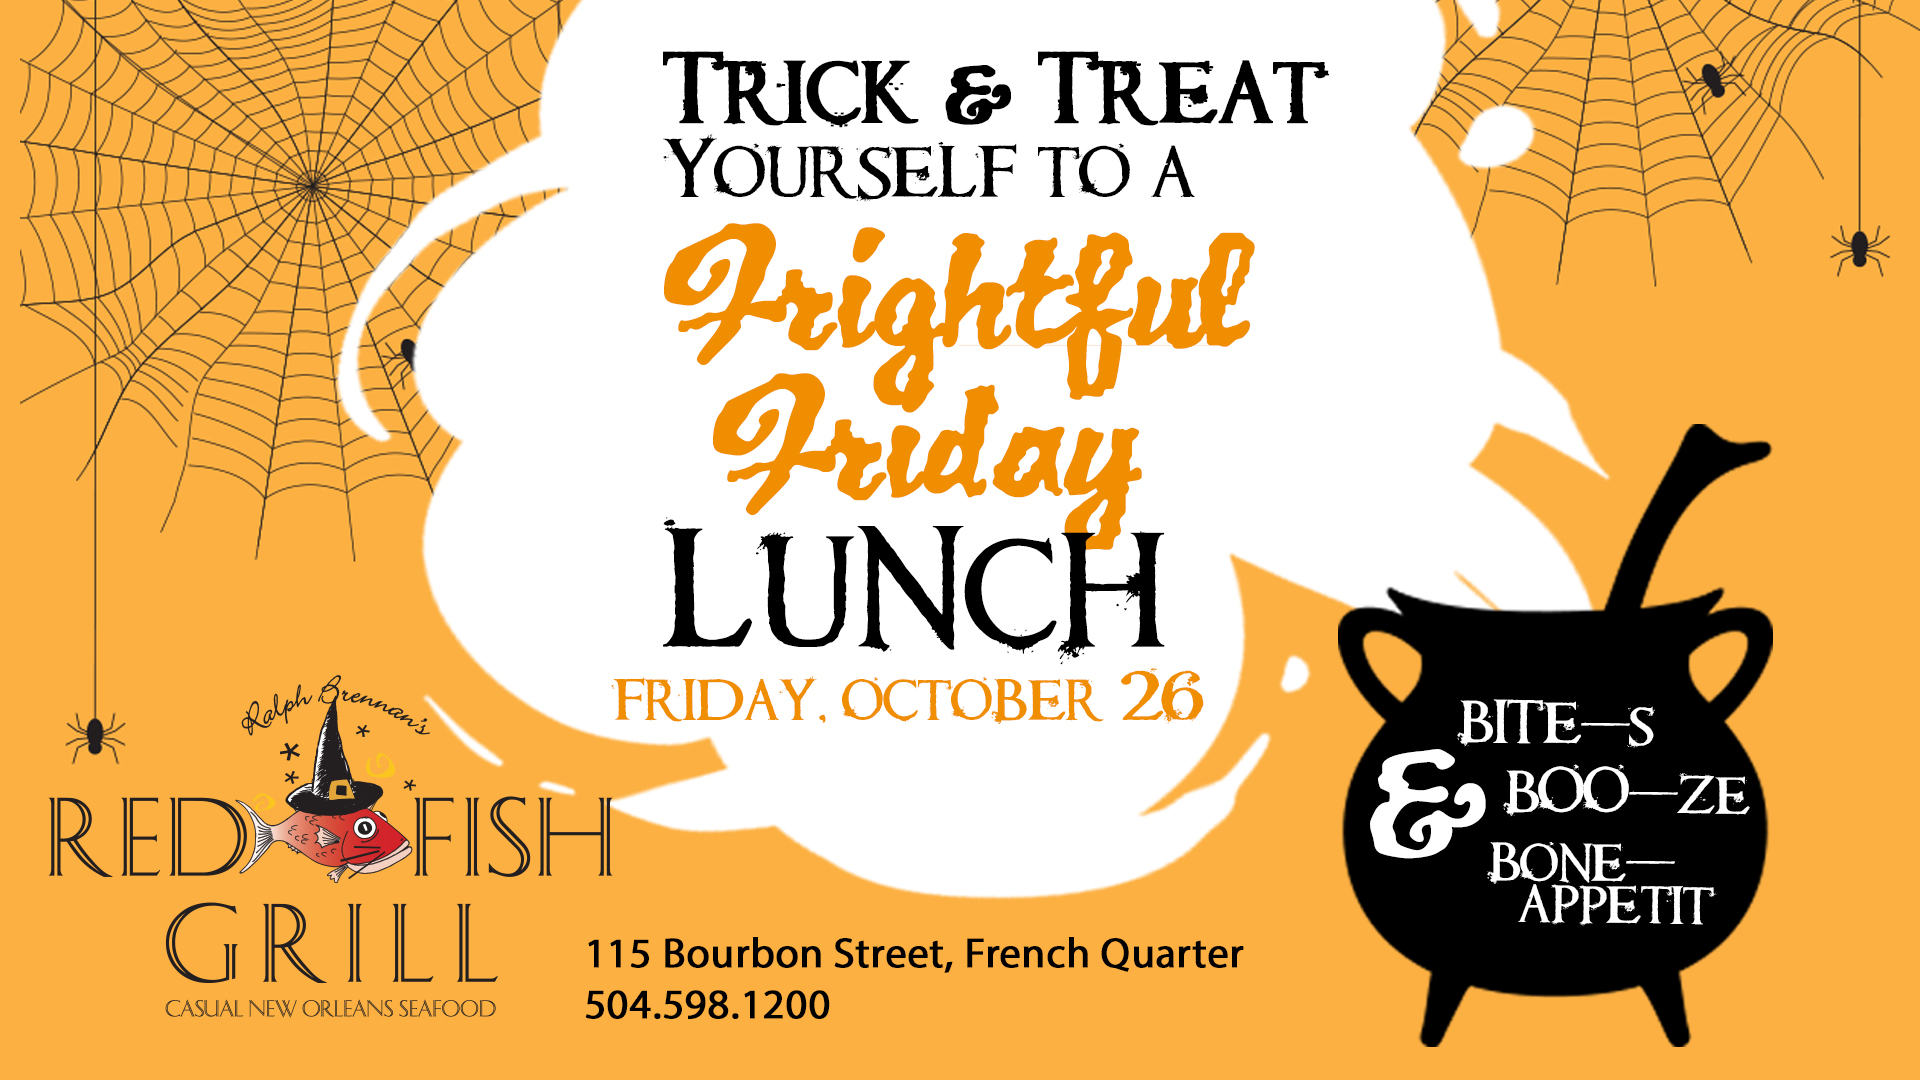 Promotion for Frightful Friday Halloween Lunch